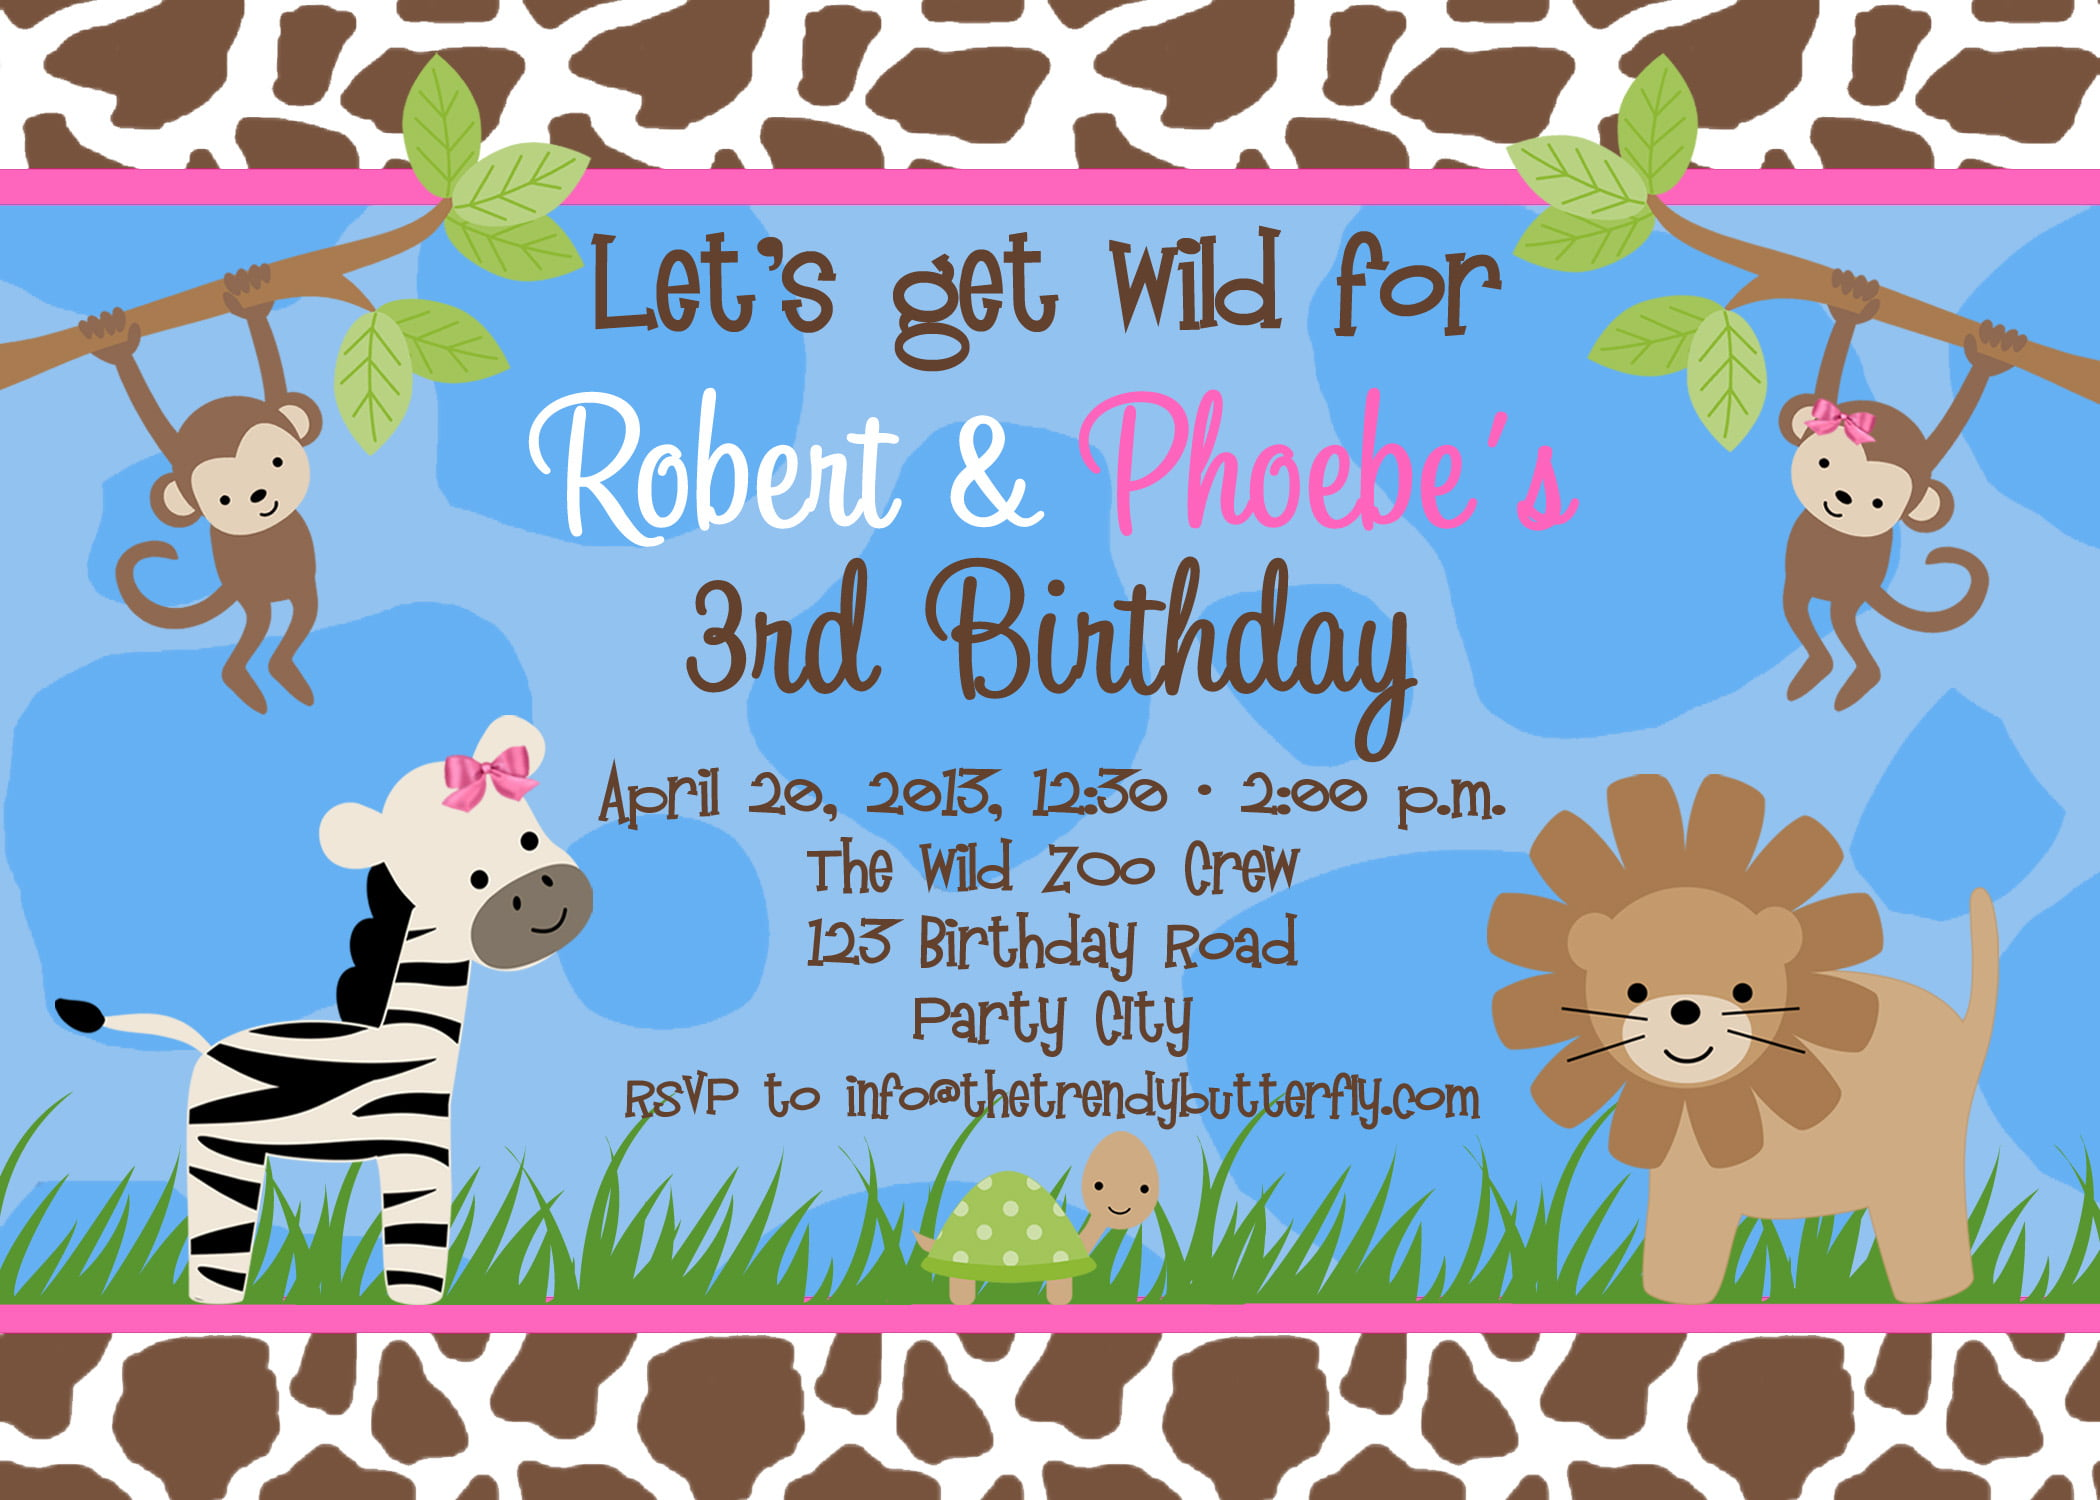 birthday party invitation templates invitations design printable jungle animal birthday party invitation templates